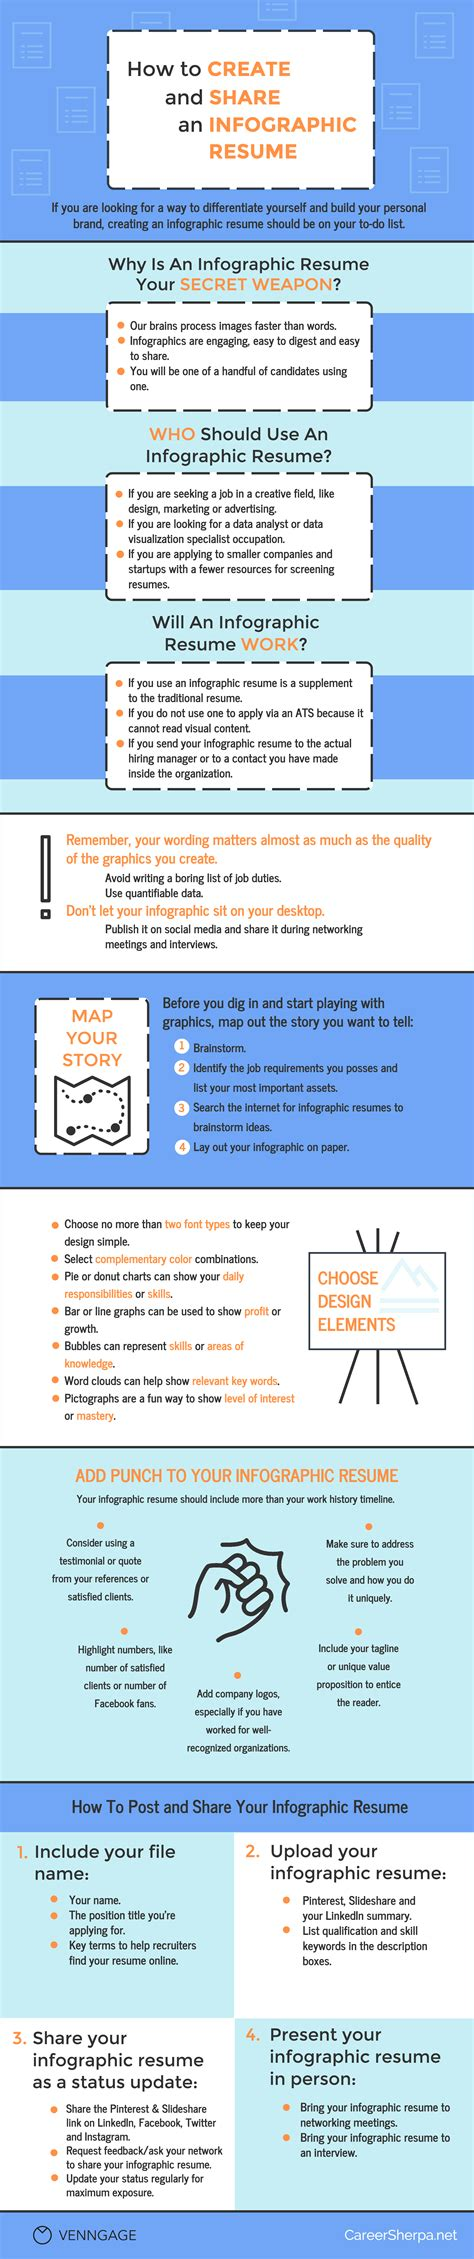 How To Create And Share An Infographic Resume [infographic